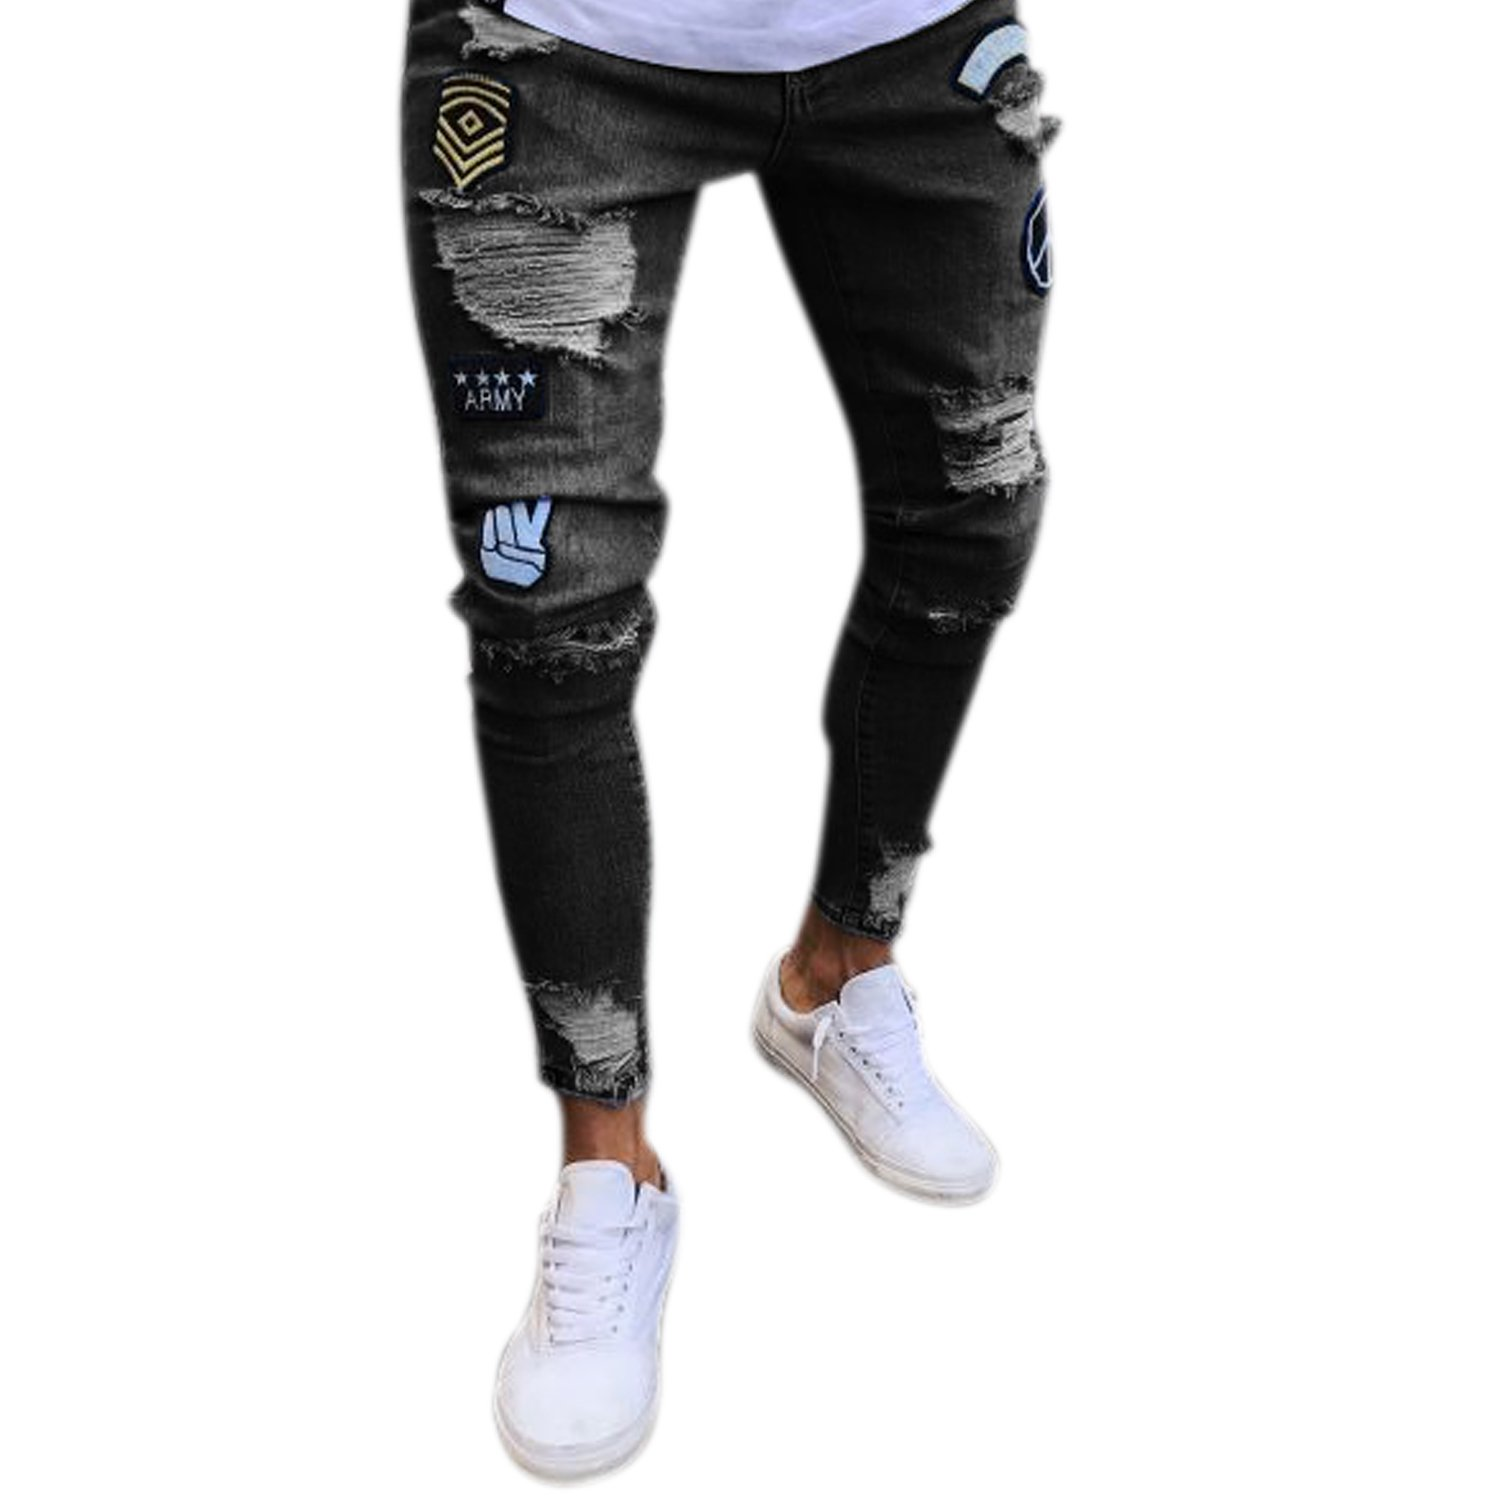 7b393fe5b6e Material: Cotton Blend Fashionable Ripped Holes Denim Jeans,Zipper deco.  Motocross-style ribbing and panels,Regular waist, ultra-slim legs with  quilted ...